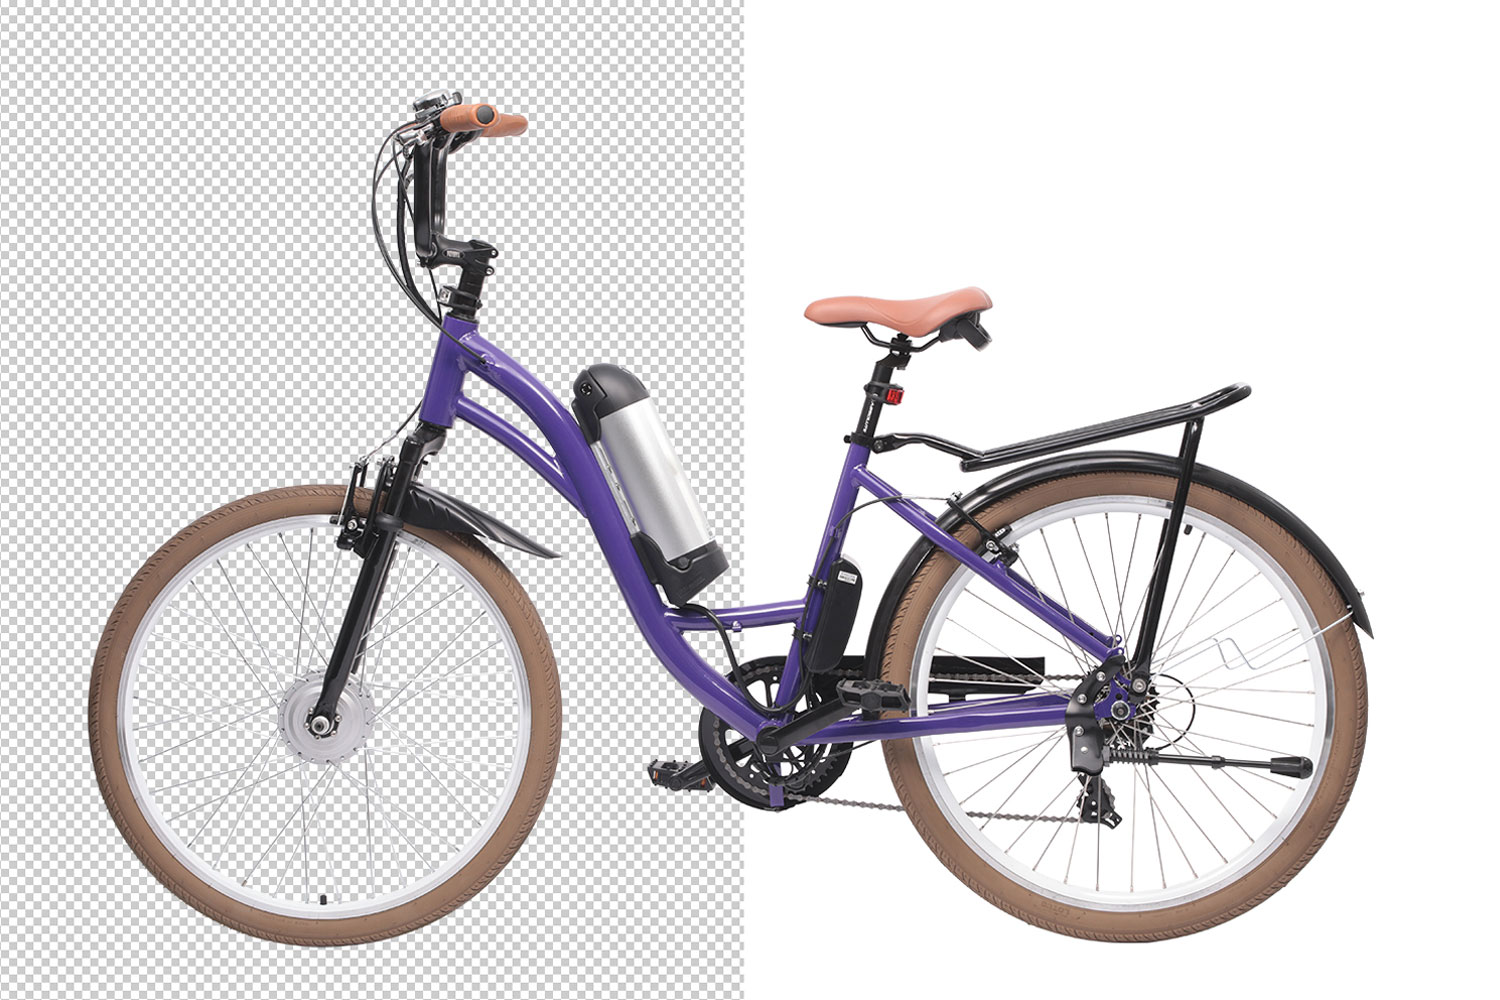 Clipping Path Service in USA